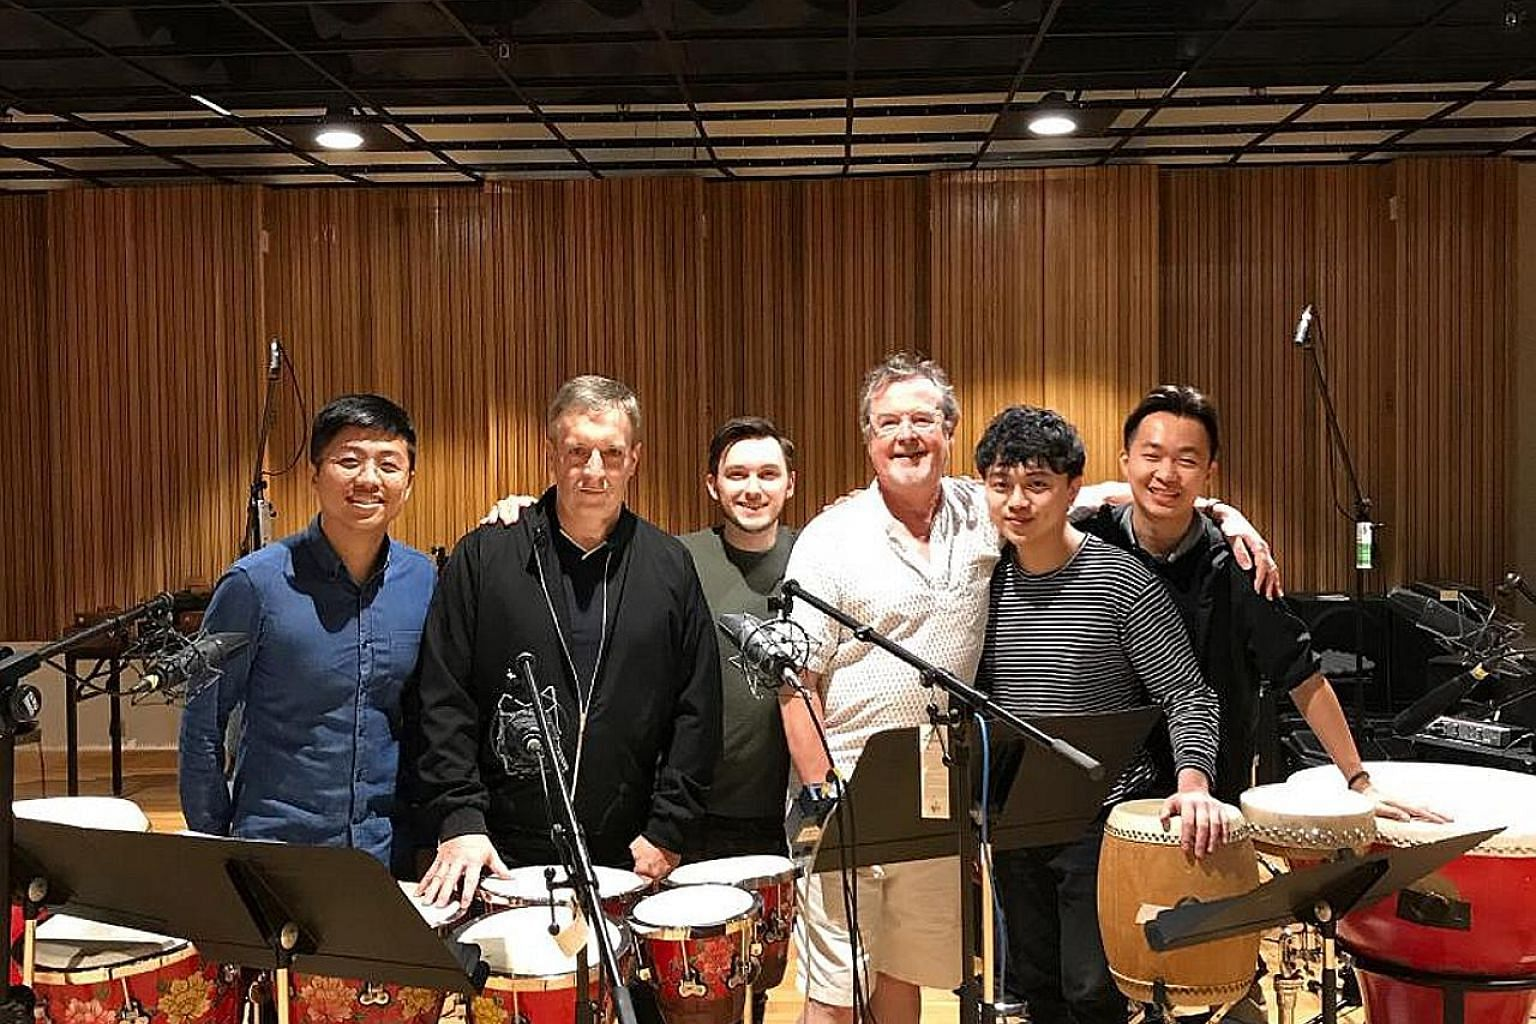 (From far left) Cheong Kah Yiong, Karma Studios owner Chris Craker, composers Alex Lamy and Richard Harvey, Derek Koh and Low Yik Hang. Cheong, Koh and Low are among the members of Ding Yi Music Company who recorded music for Disney's Mulan.